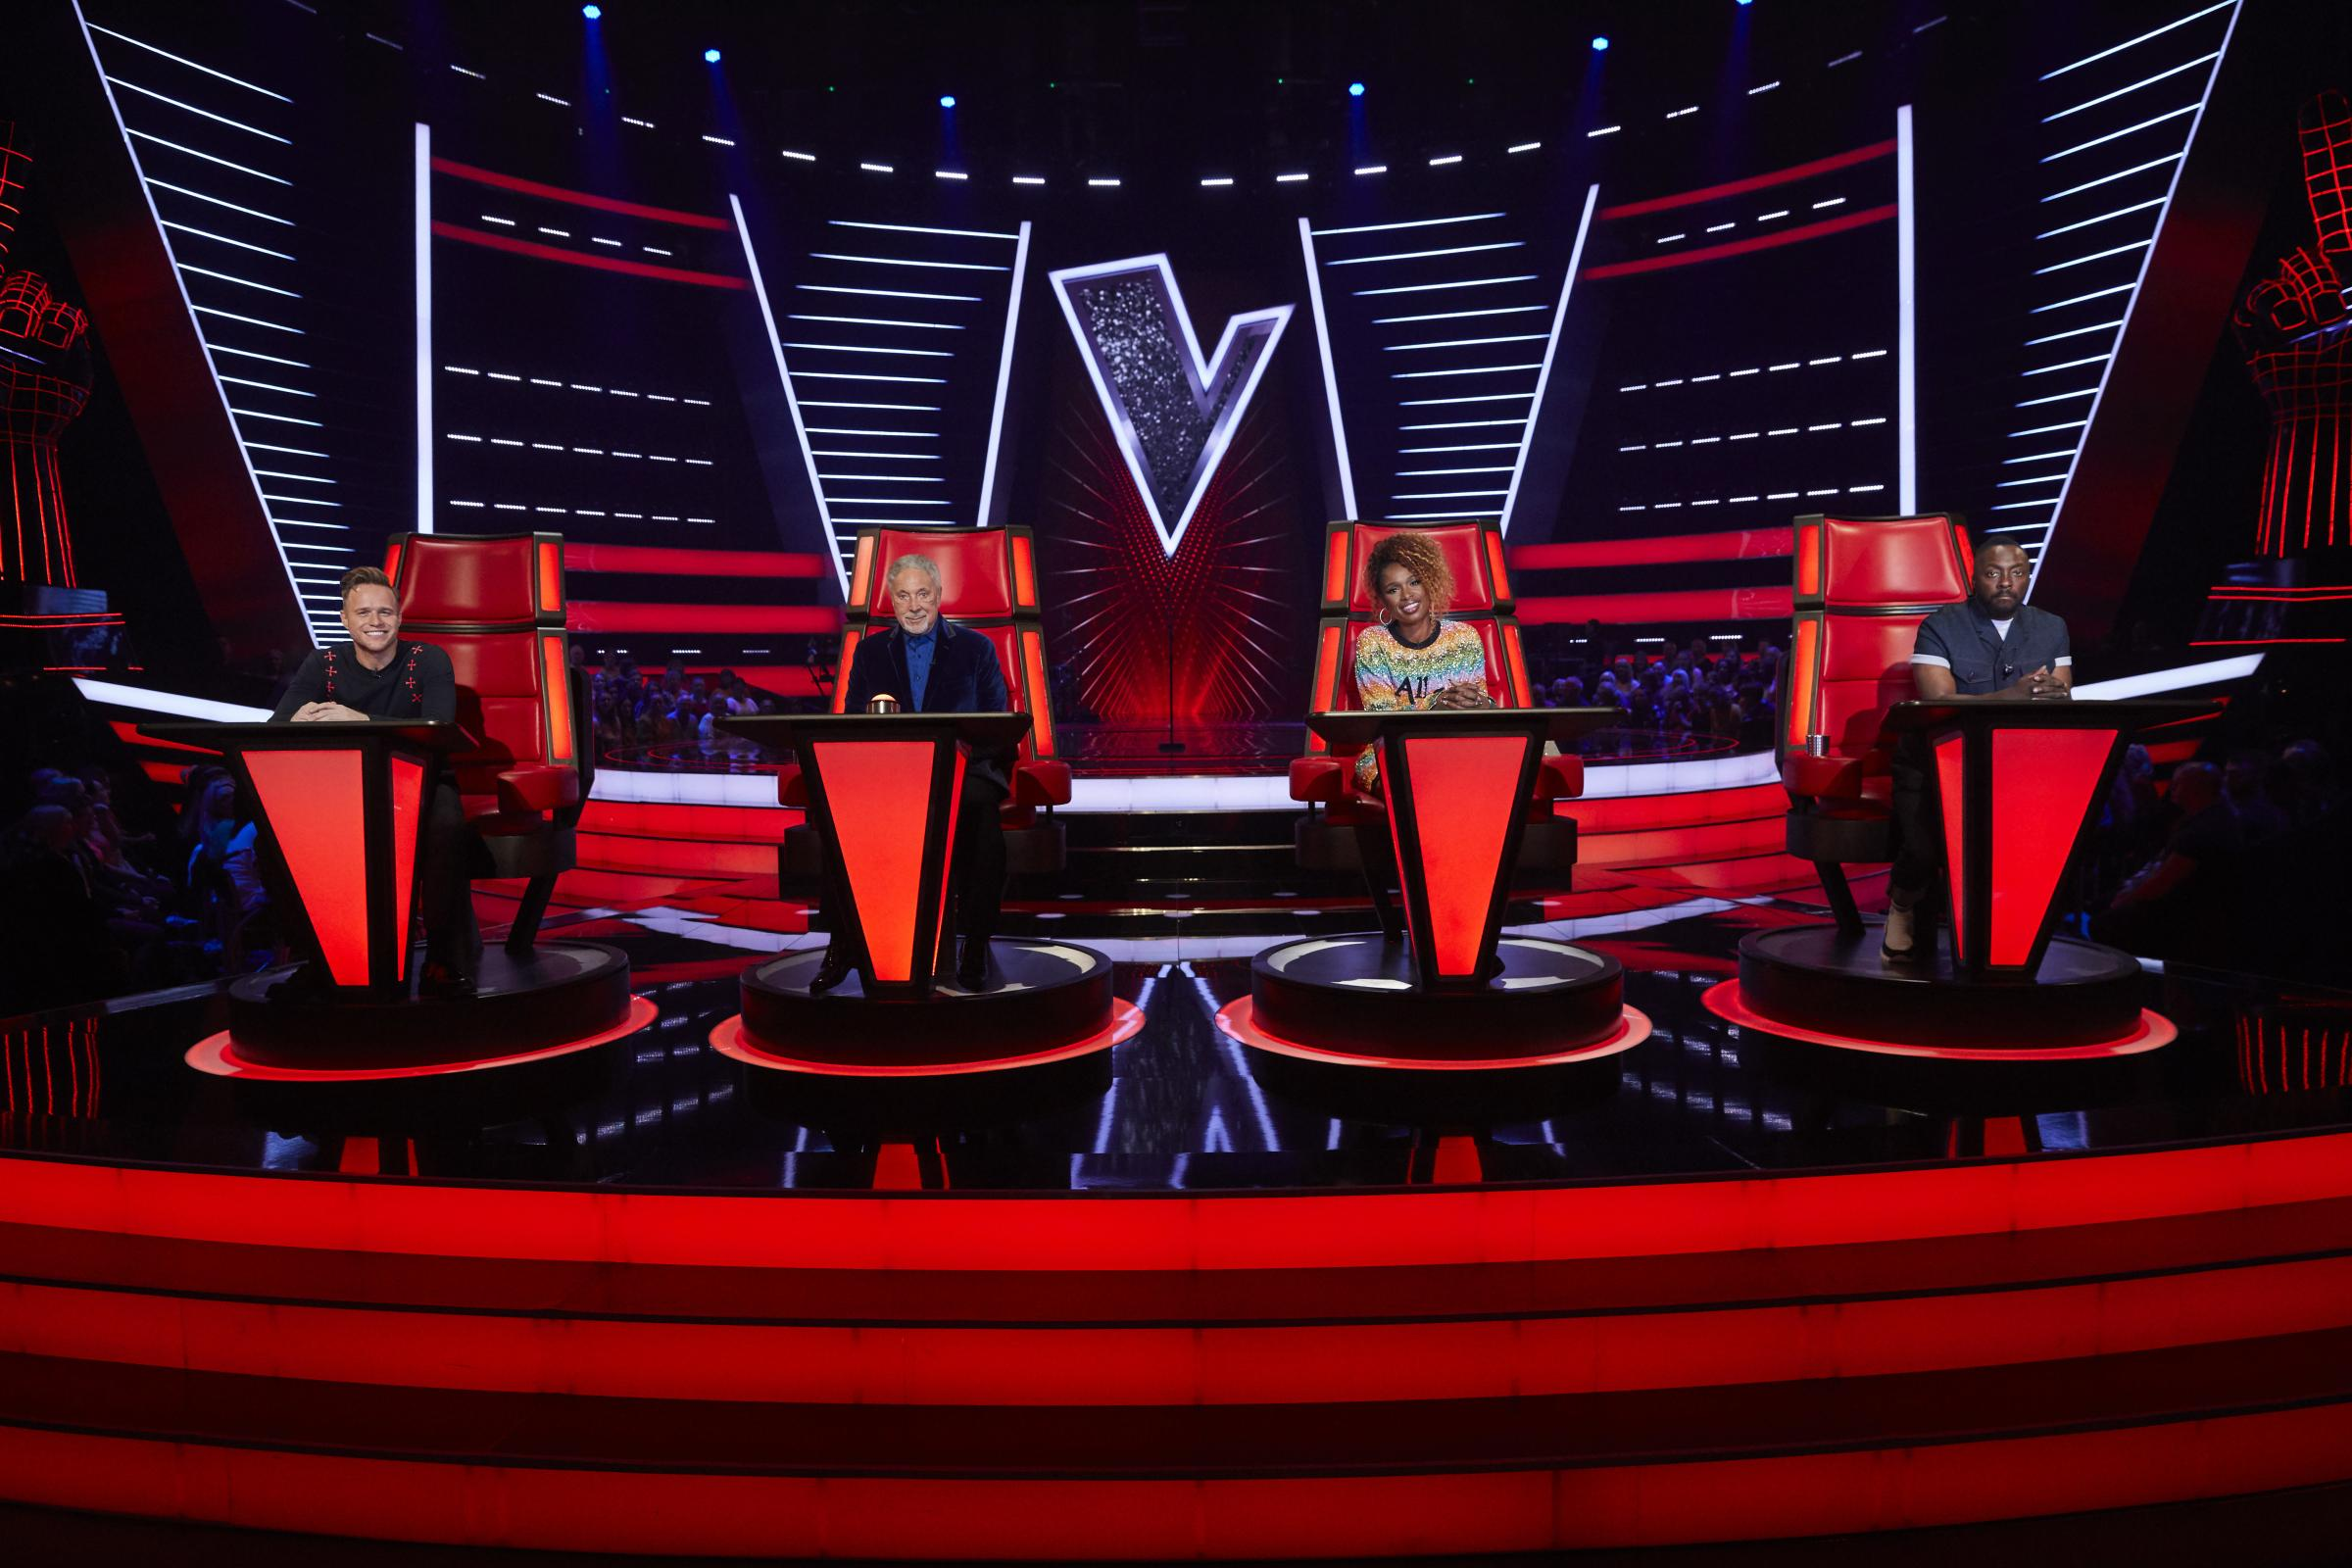 Auditions for The Voice UK are coming to Wrexham next week